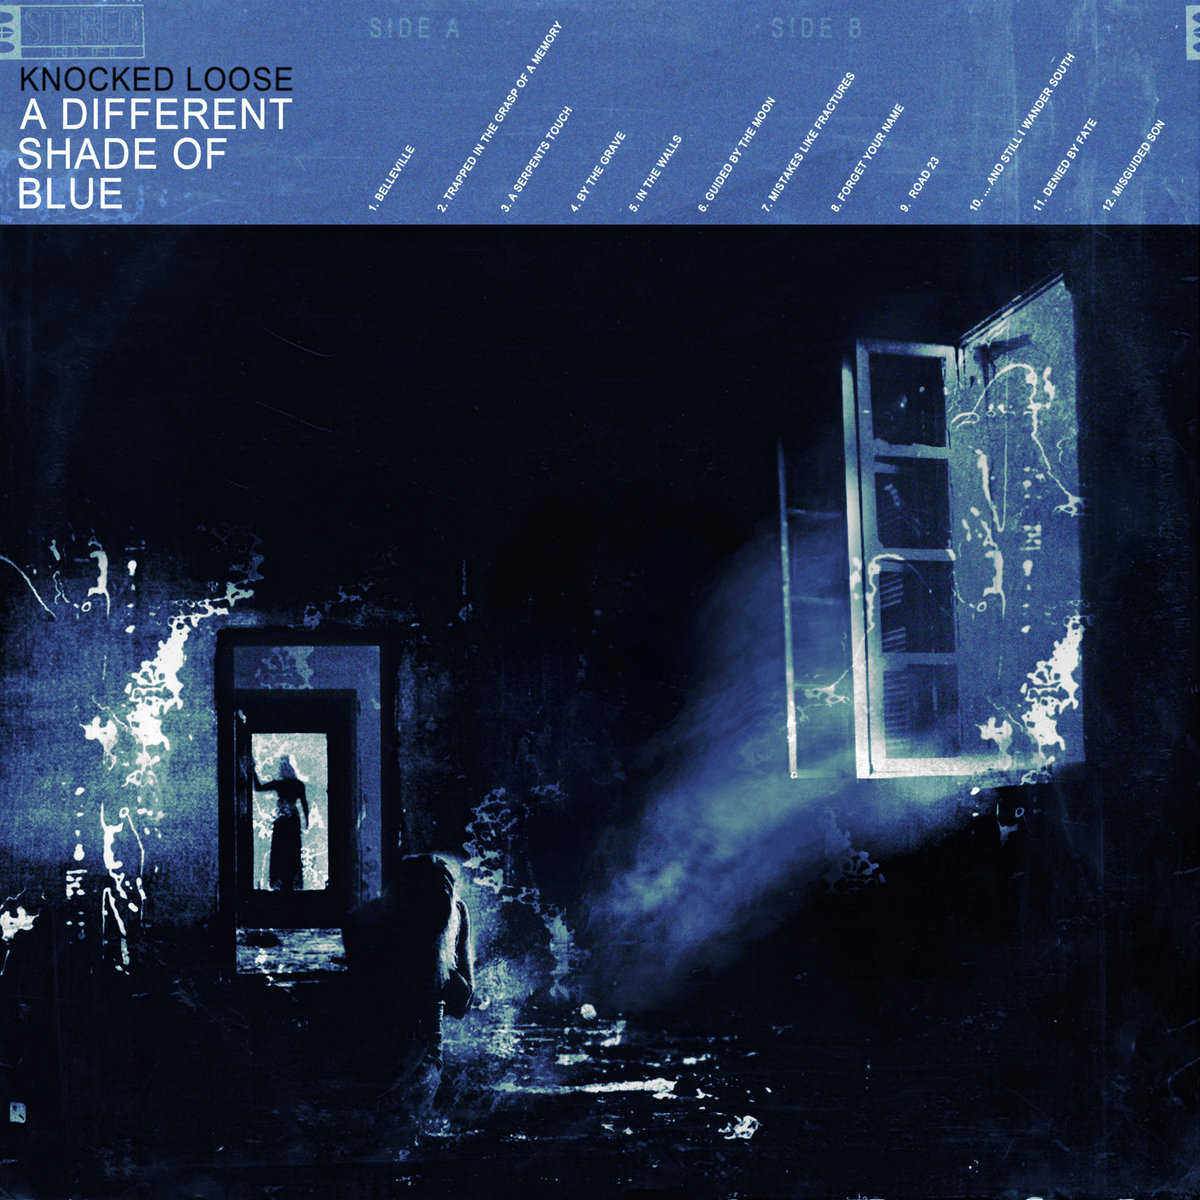 knocked-loose-a-different-shade-of-blue-das-dilemma-album-review